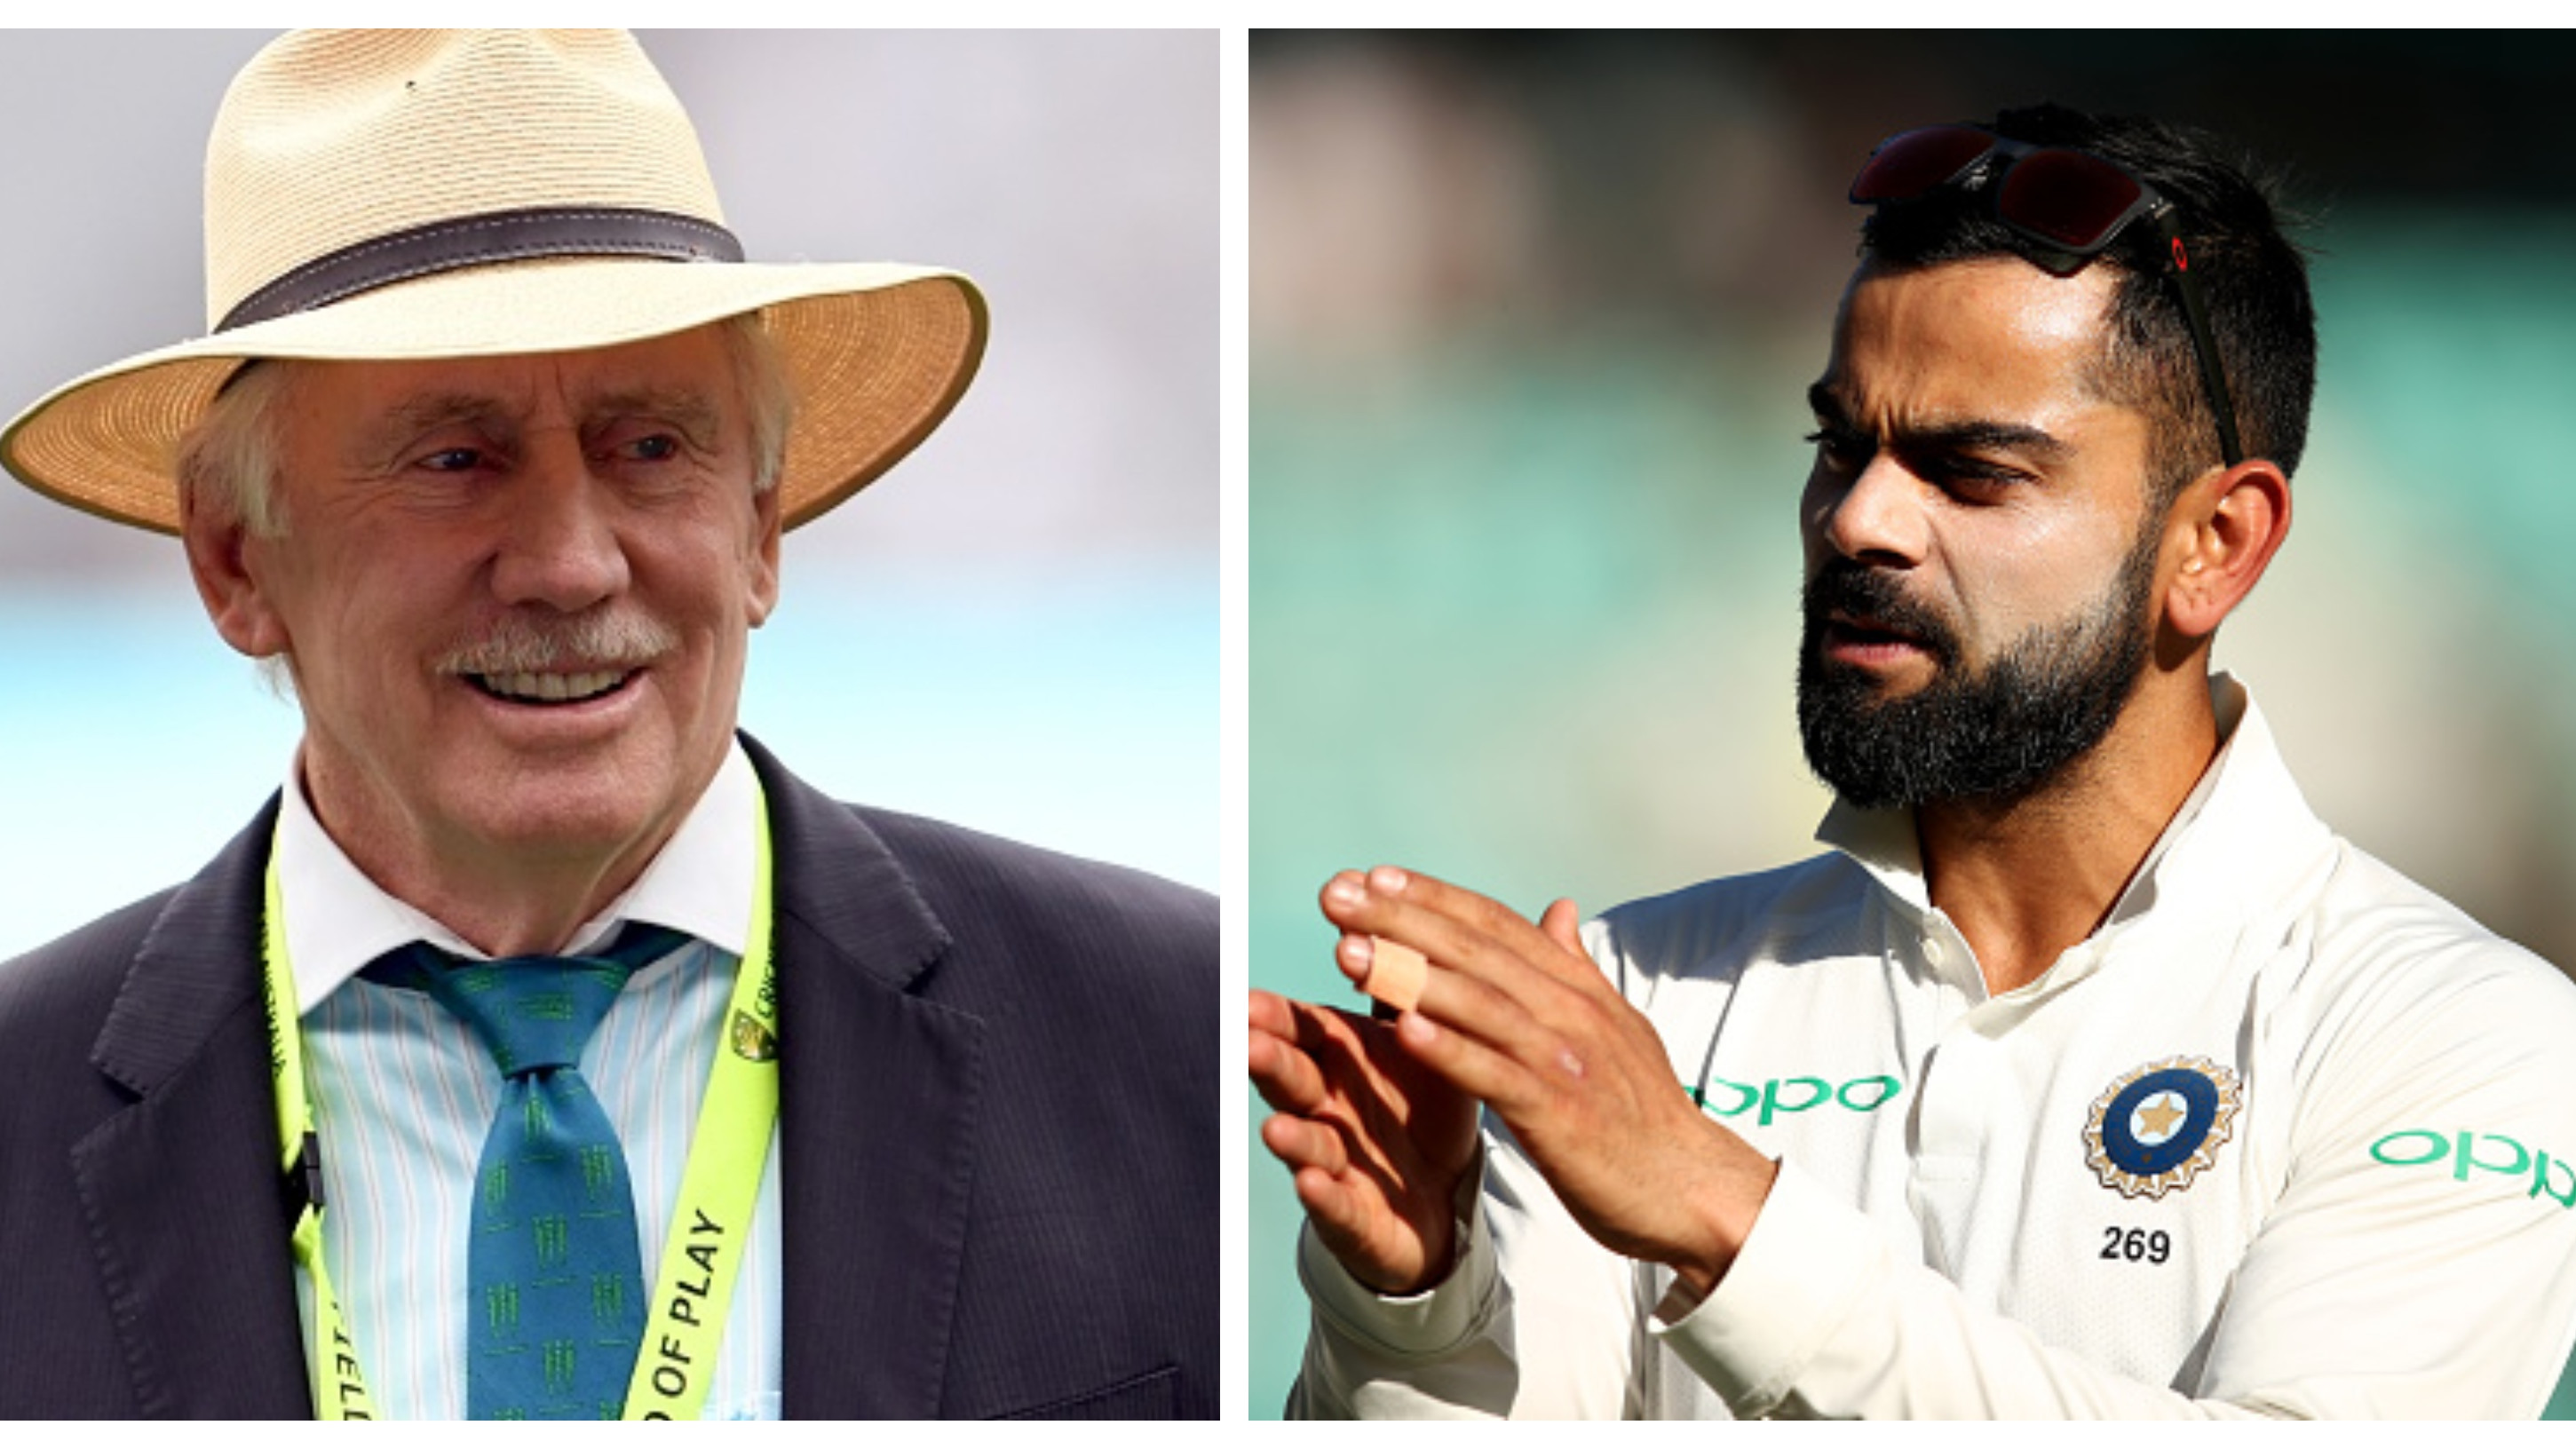 AUS v IND 2018-19: Virat Kohli would be a champion in any era of the game, says Ian Chappell